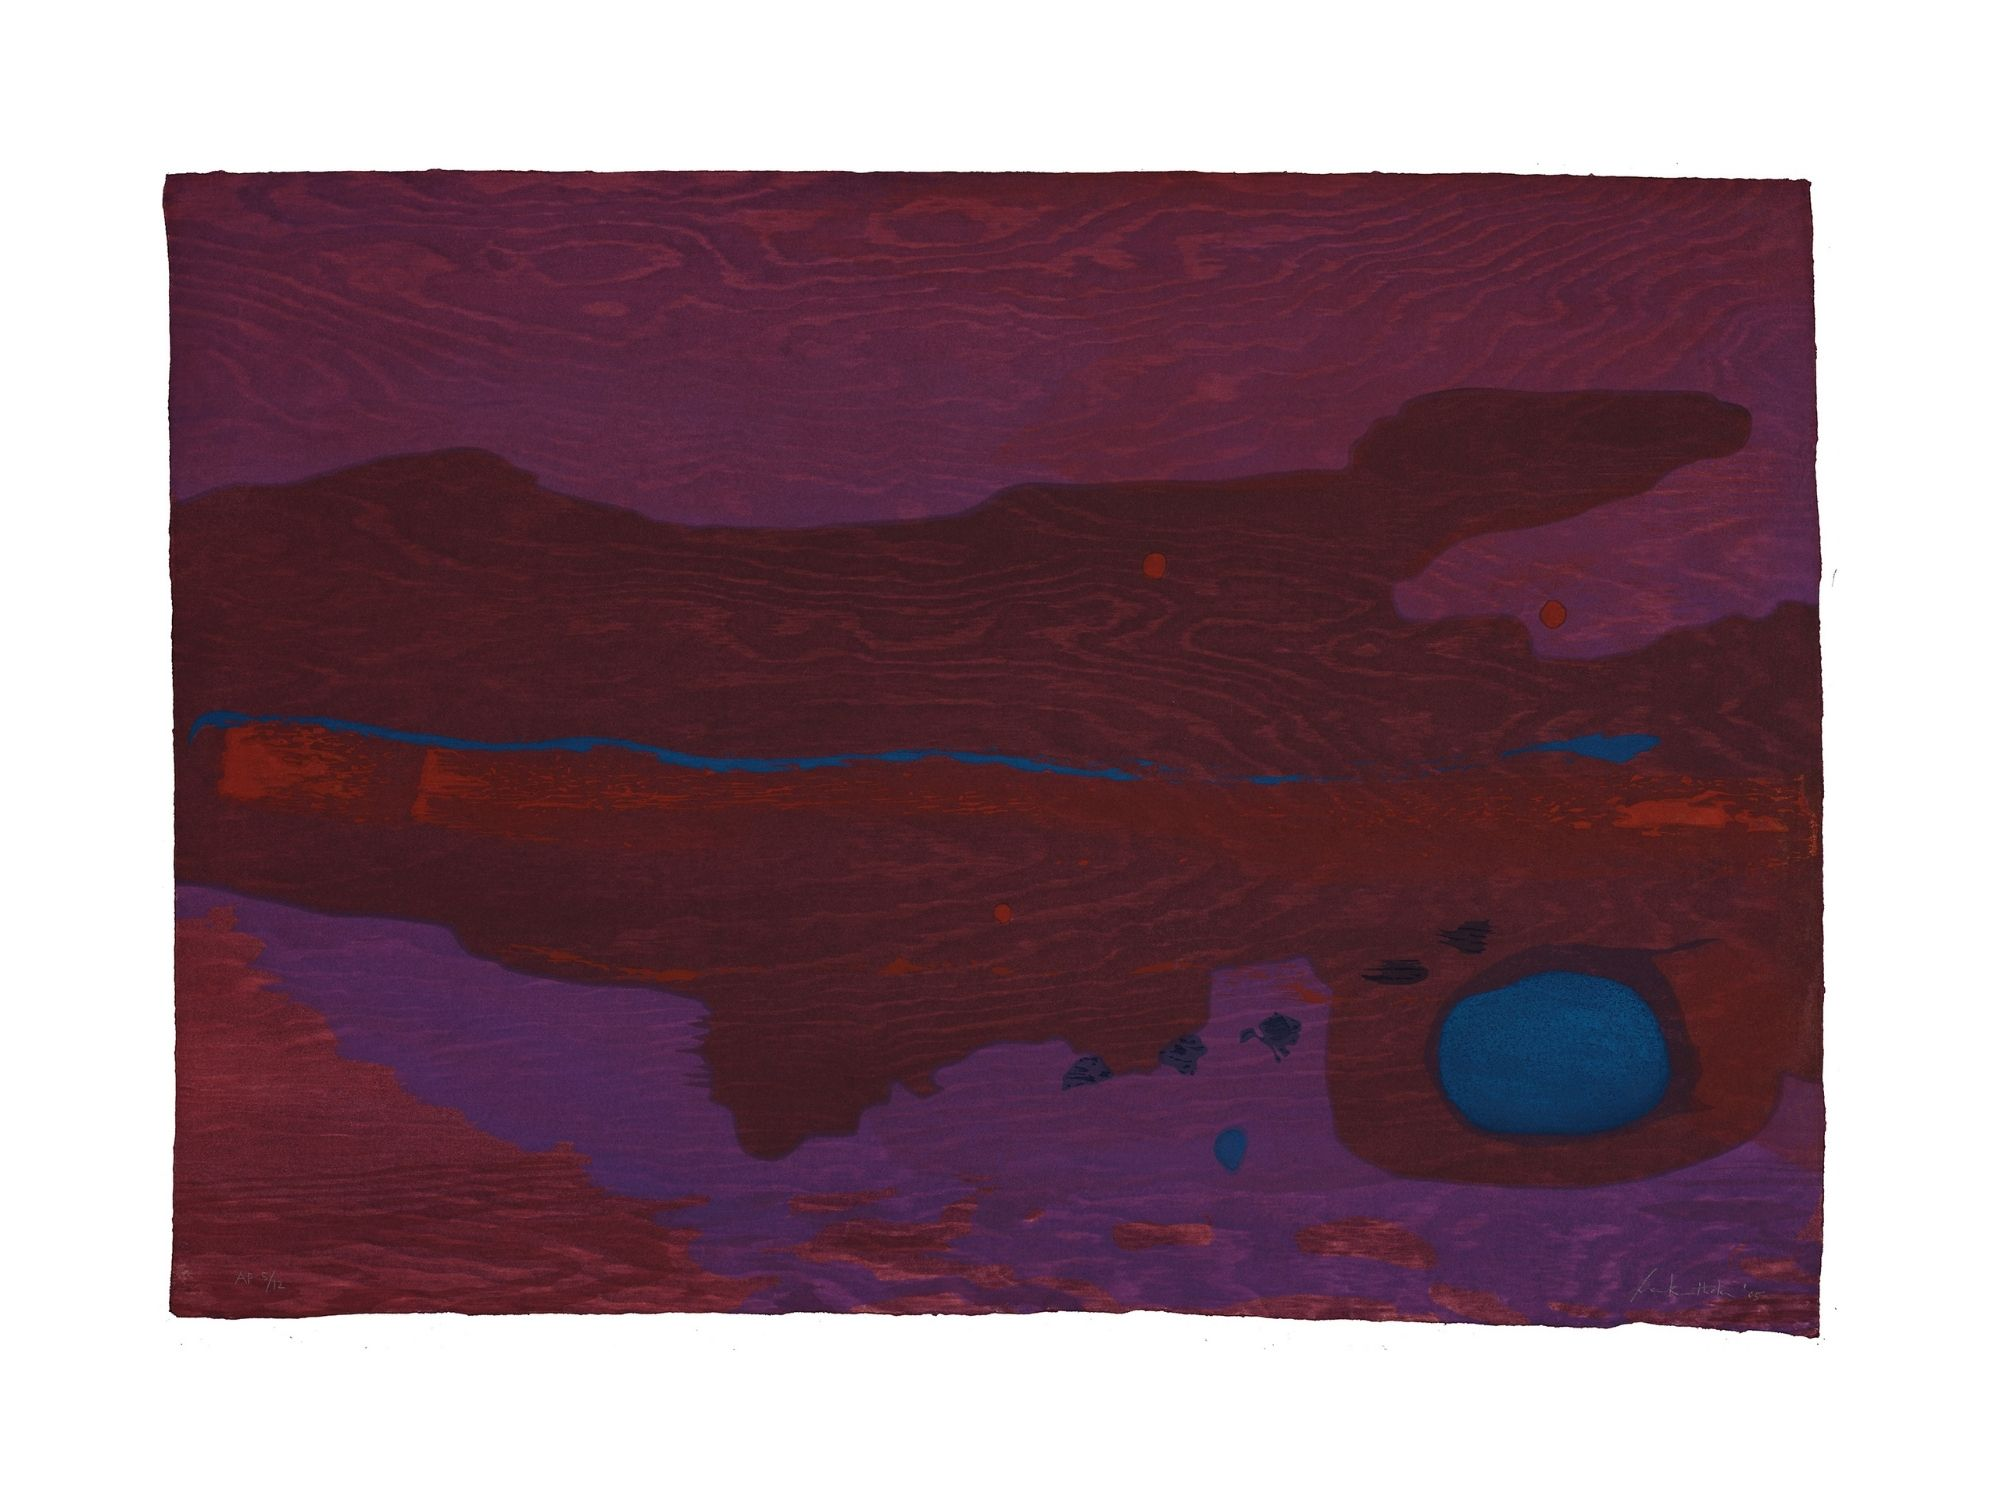 An abstract painting with various tones of purple.